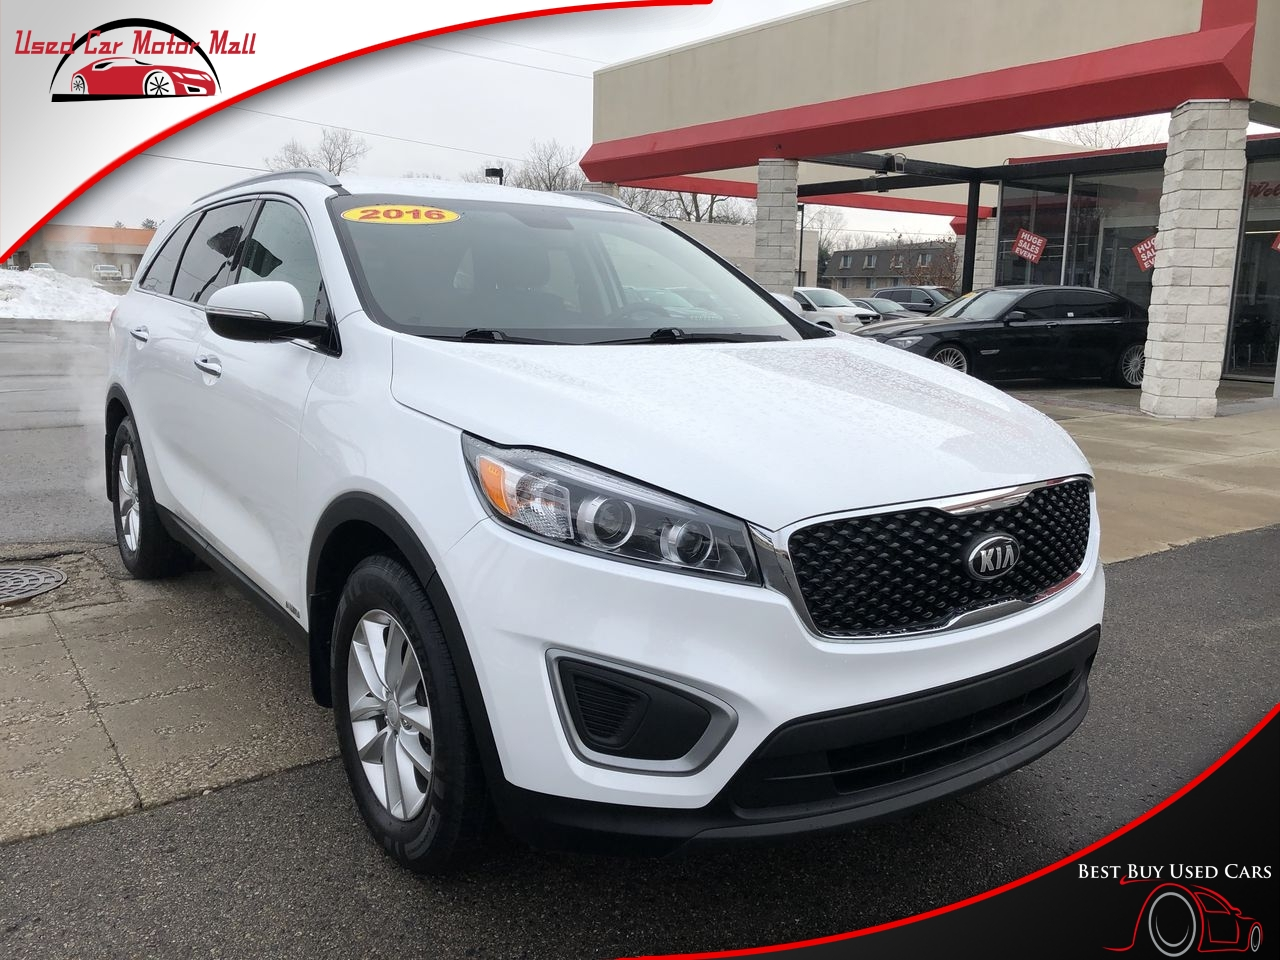 2013 Kia Sorento SX AWD, 385634, Photo 1